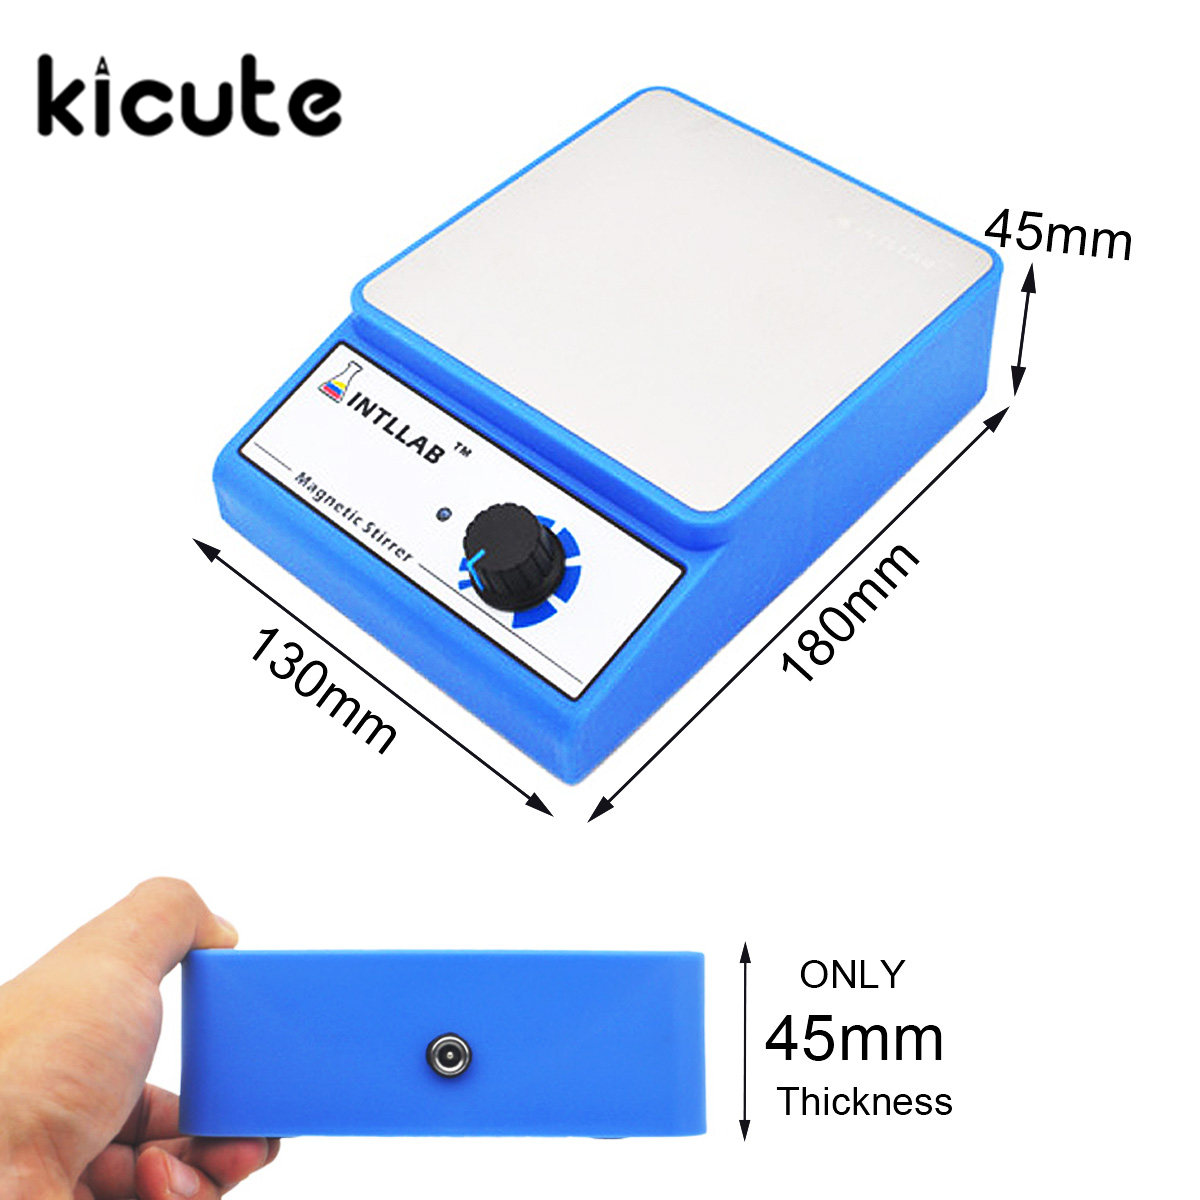 KiCute New Magnetic Stirrer Home Laboratory Magnetic Mixer Stirrers Apparatus AC100-240V Laboratory Chemistry Magnetic Stirrer купить